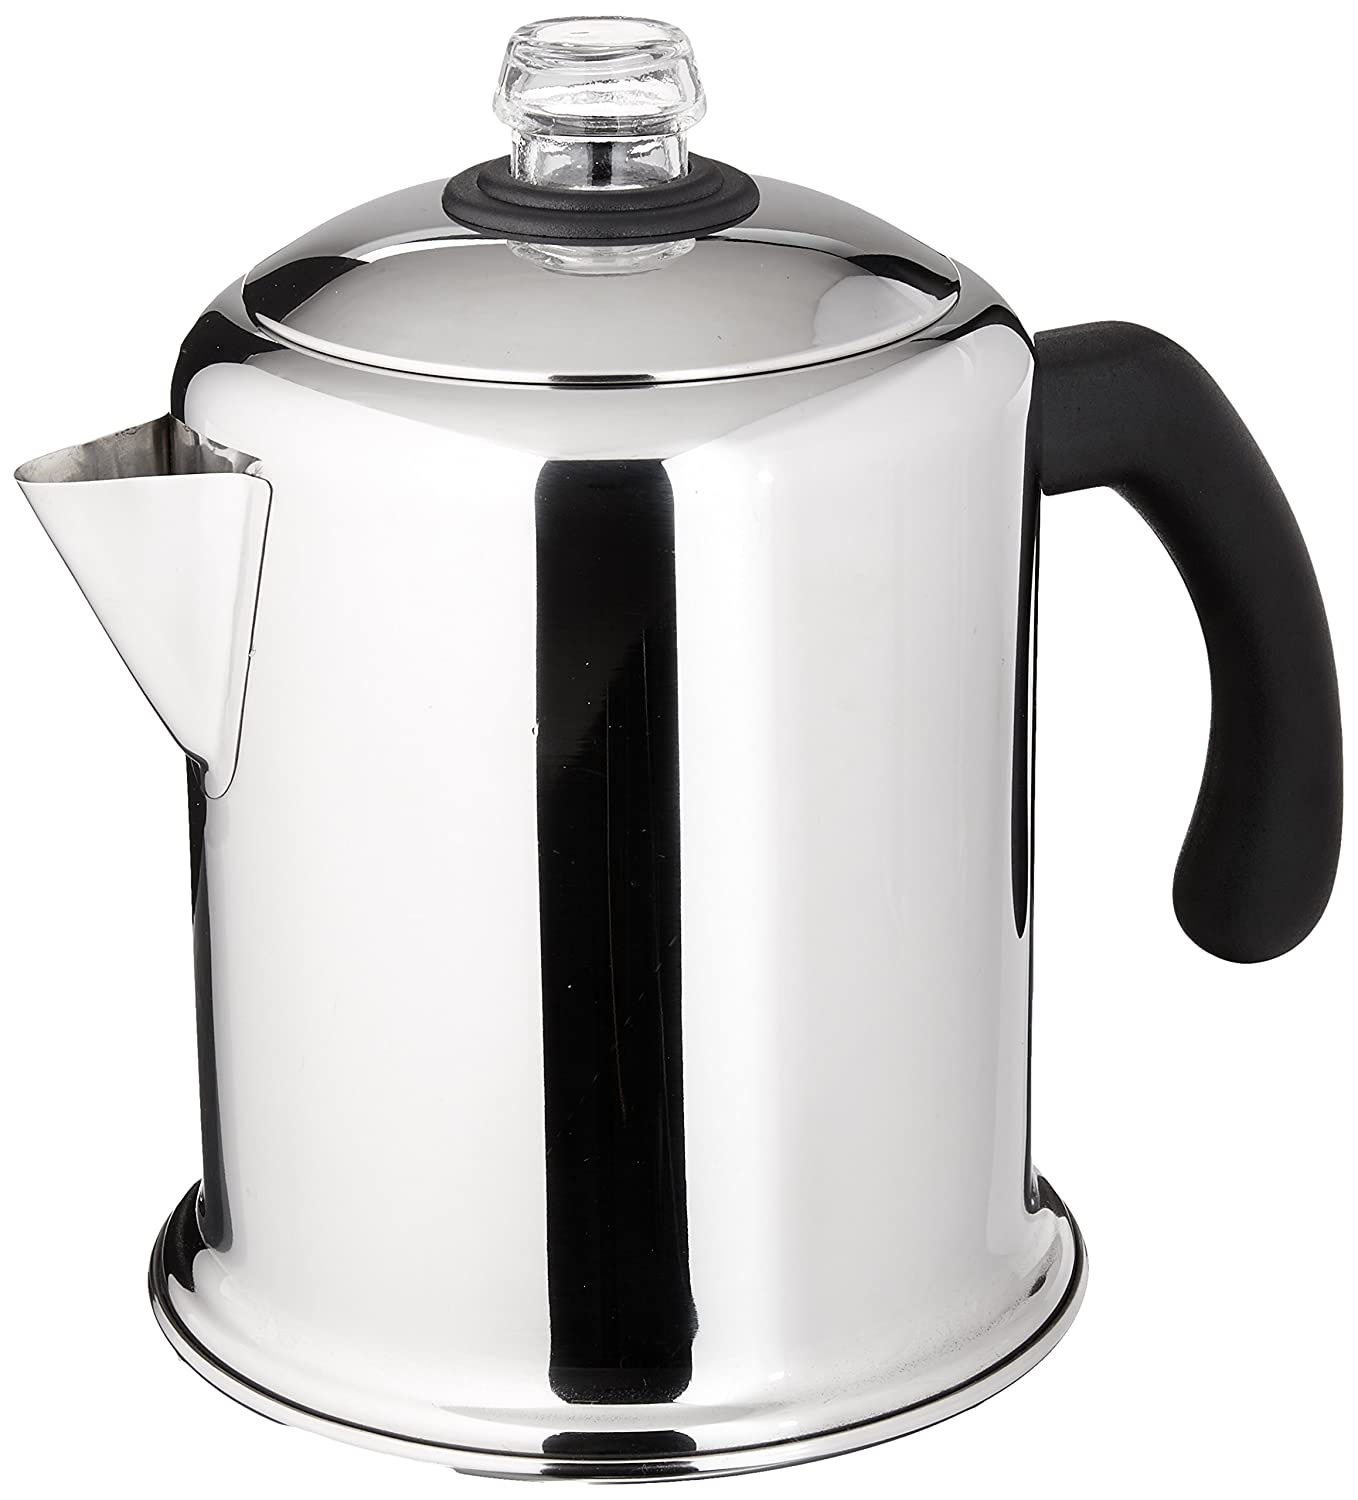 Percolator 8 Cup Ss Meyer Cookware 50124